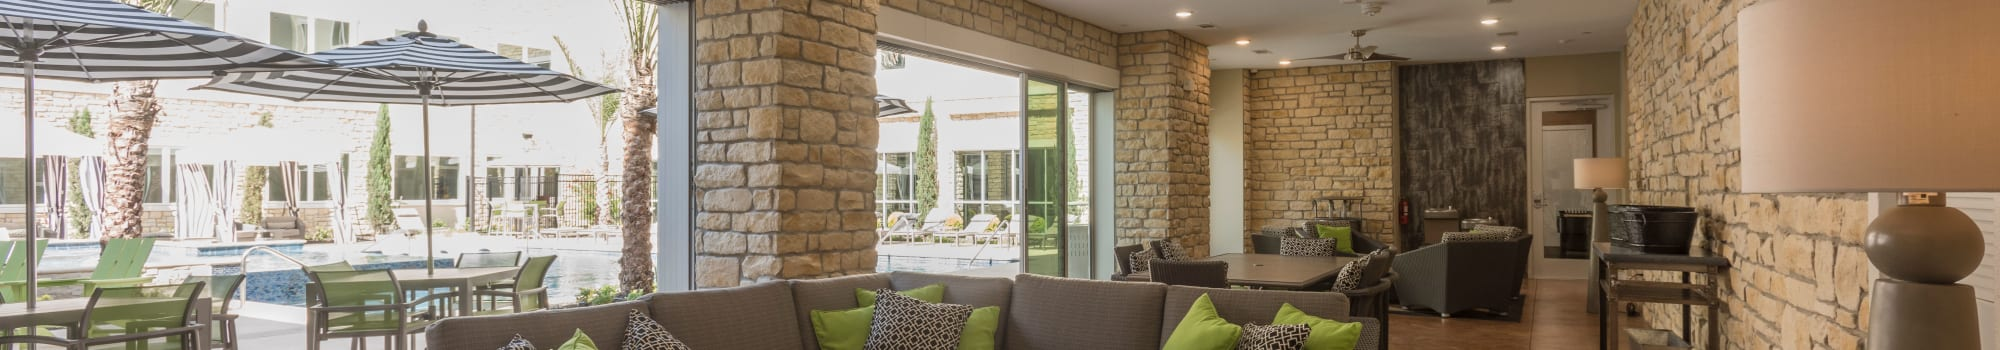 Photos of The Abbey at Dominion Crossing in San Antonio, Texas